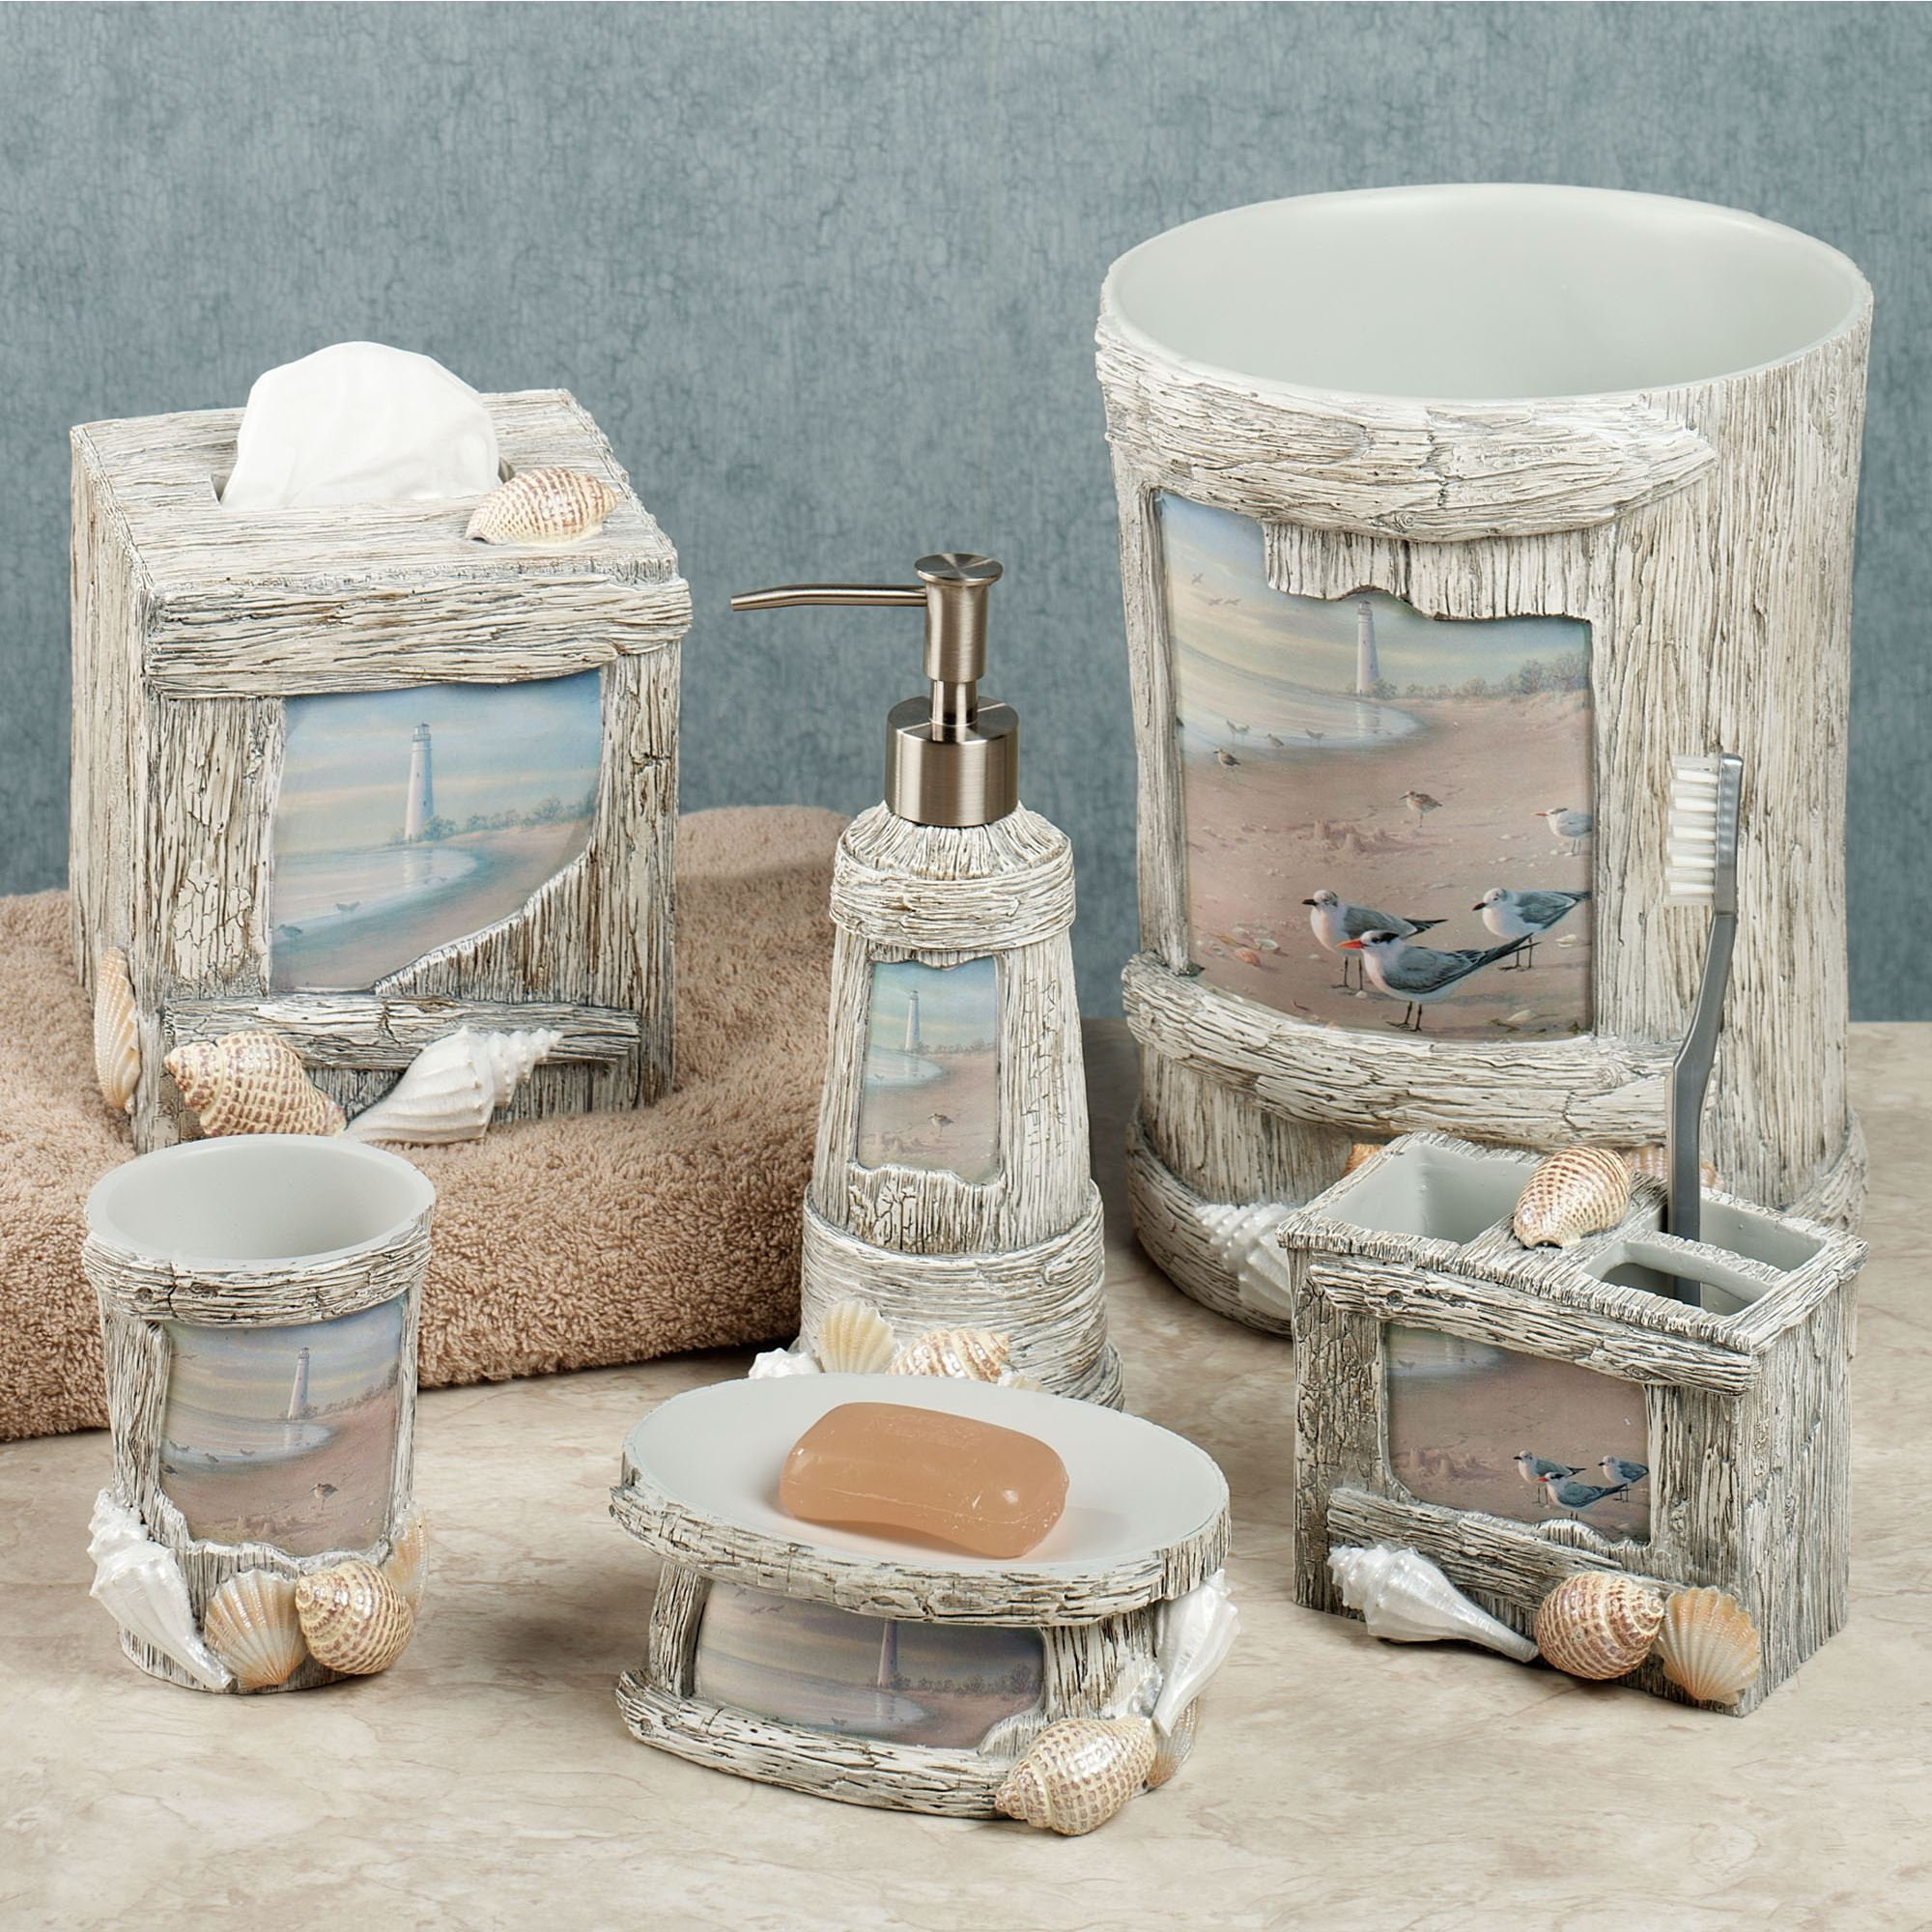 At the beach bath accessories for Bath shower accessories